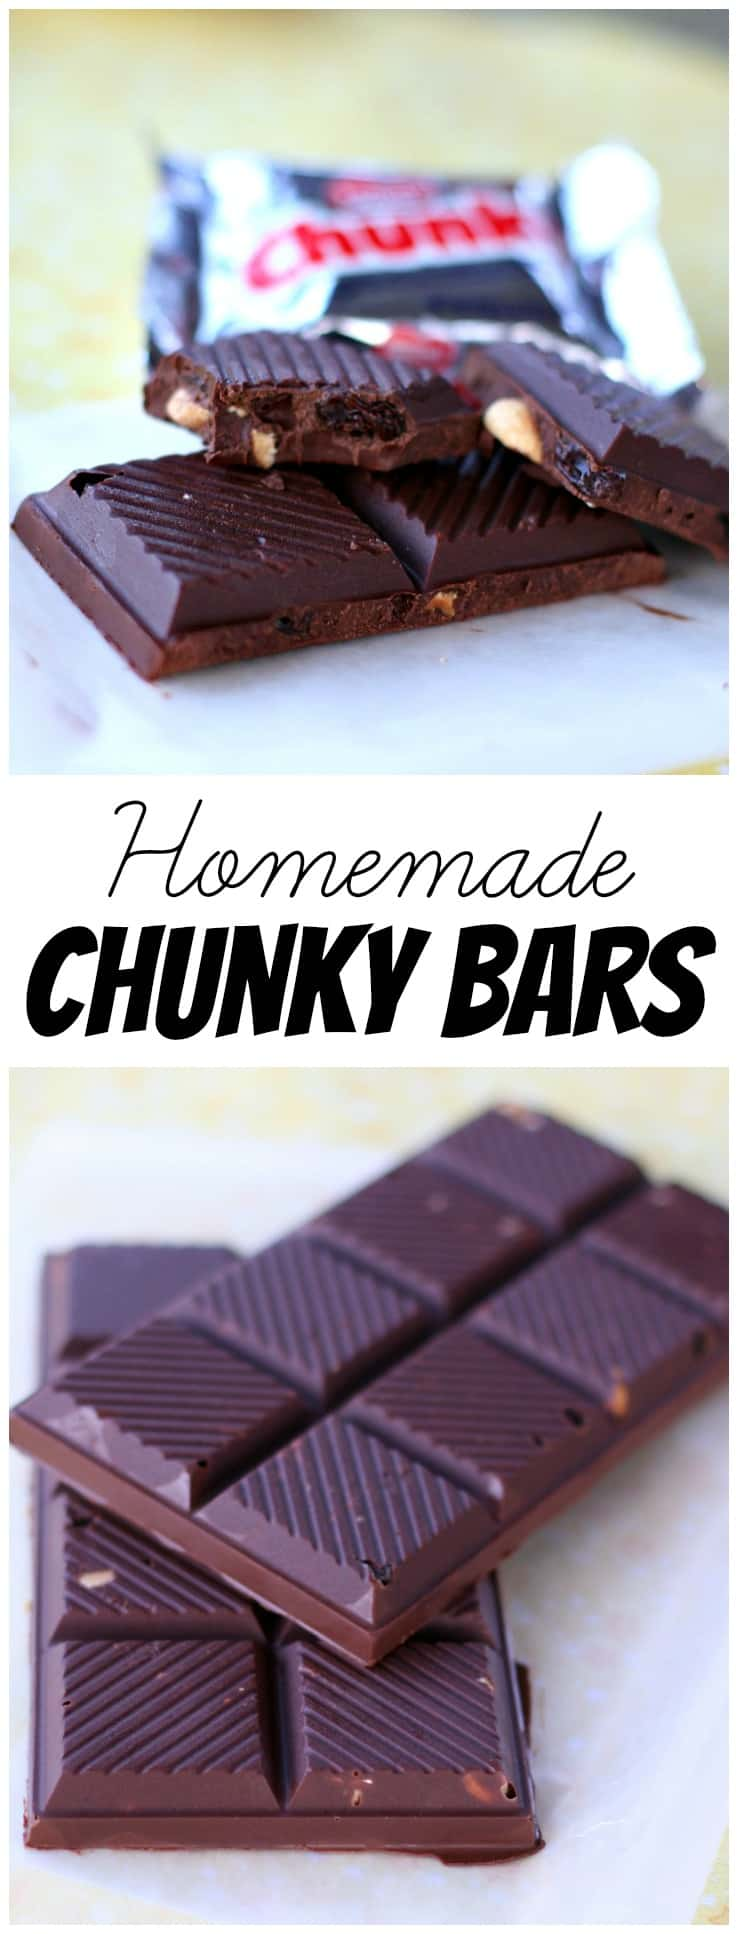 These homemade Chunky Bars are delicious with this super easy recipe! The perfect mix of sweet and salty in a candy bar!